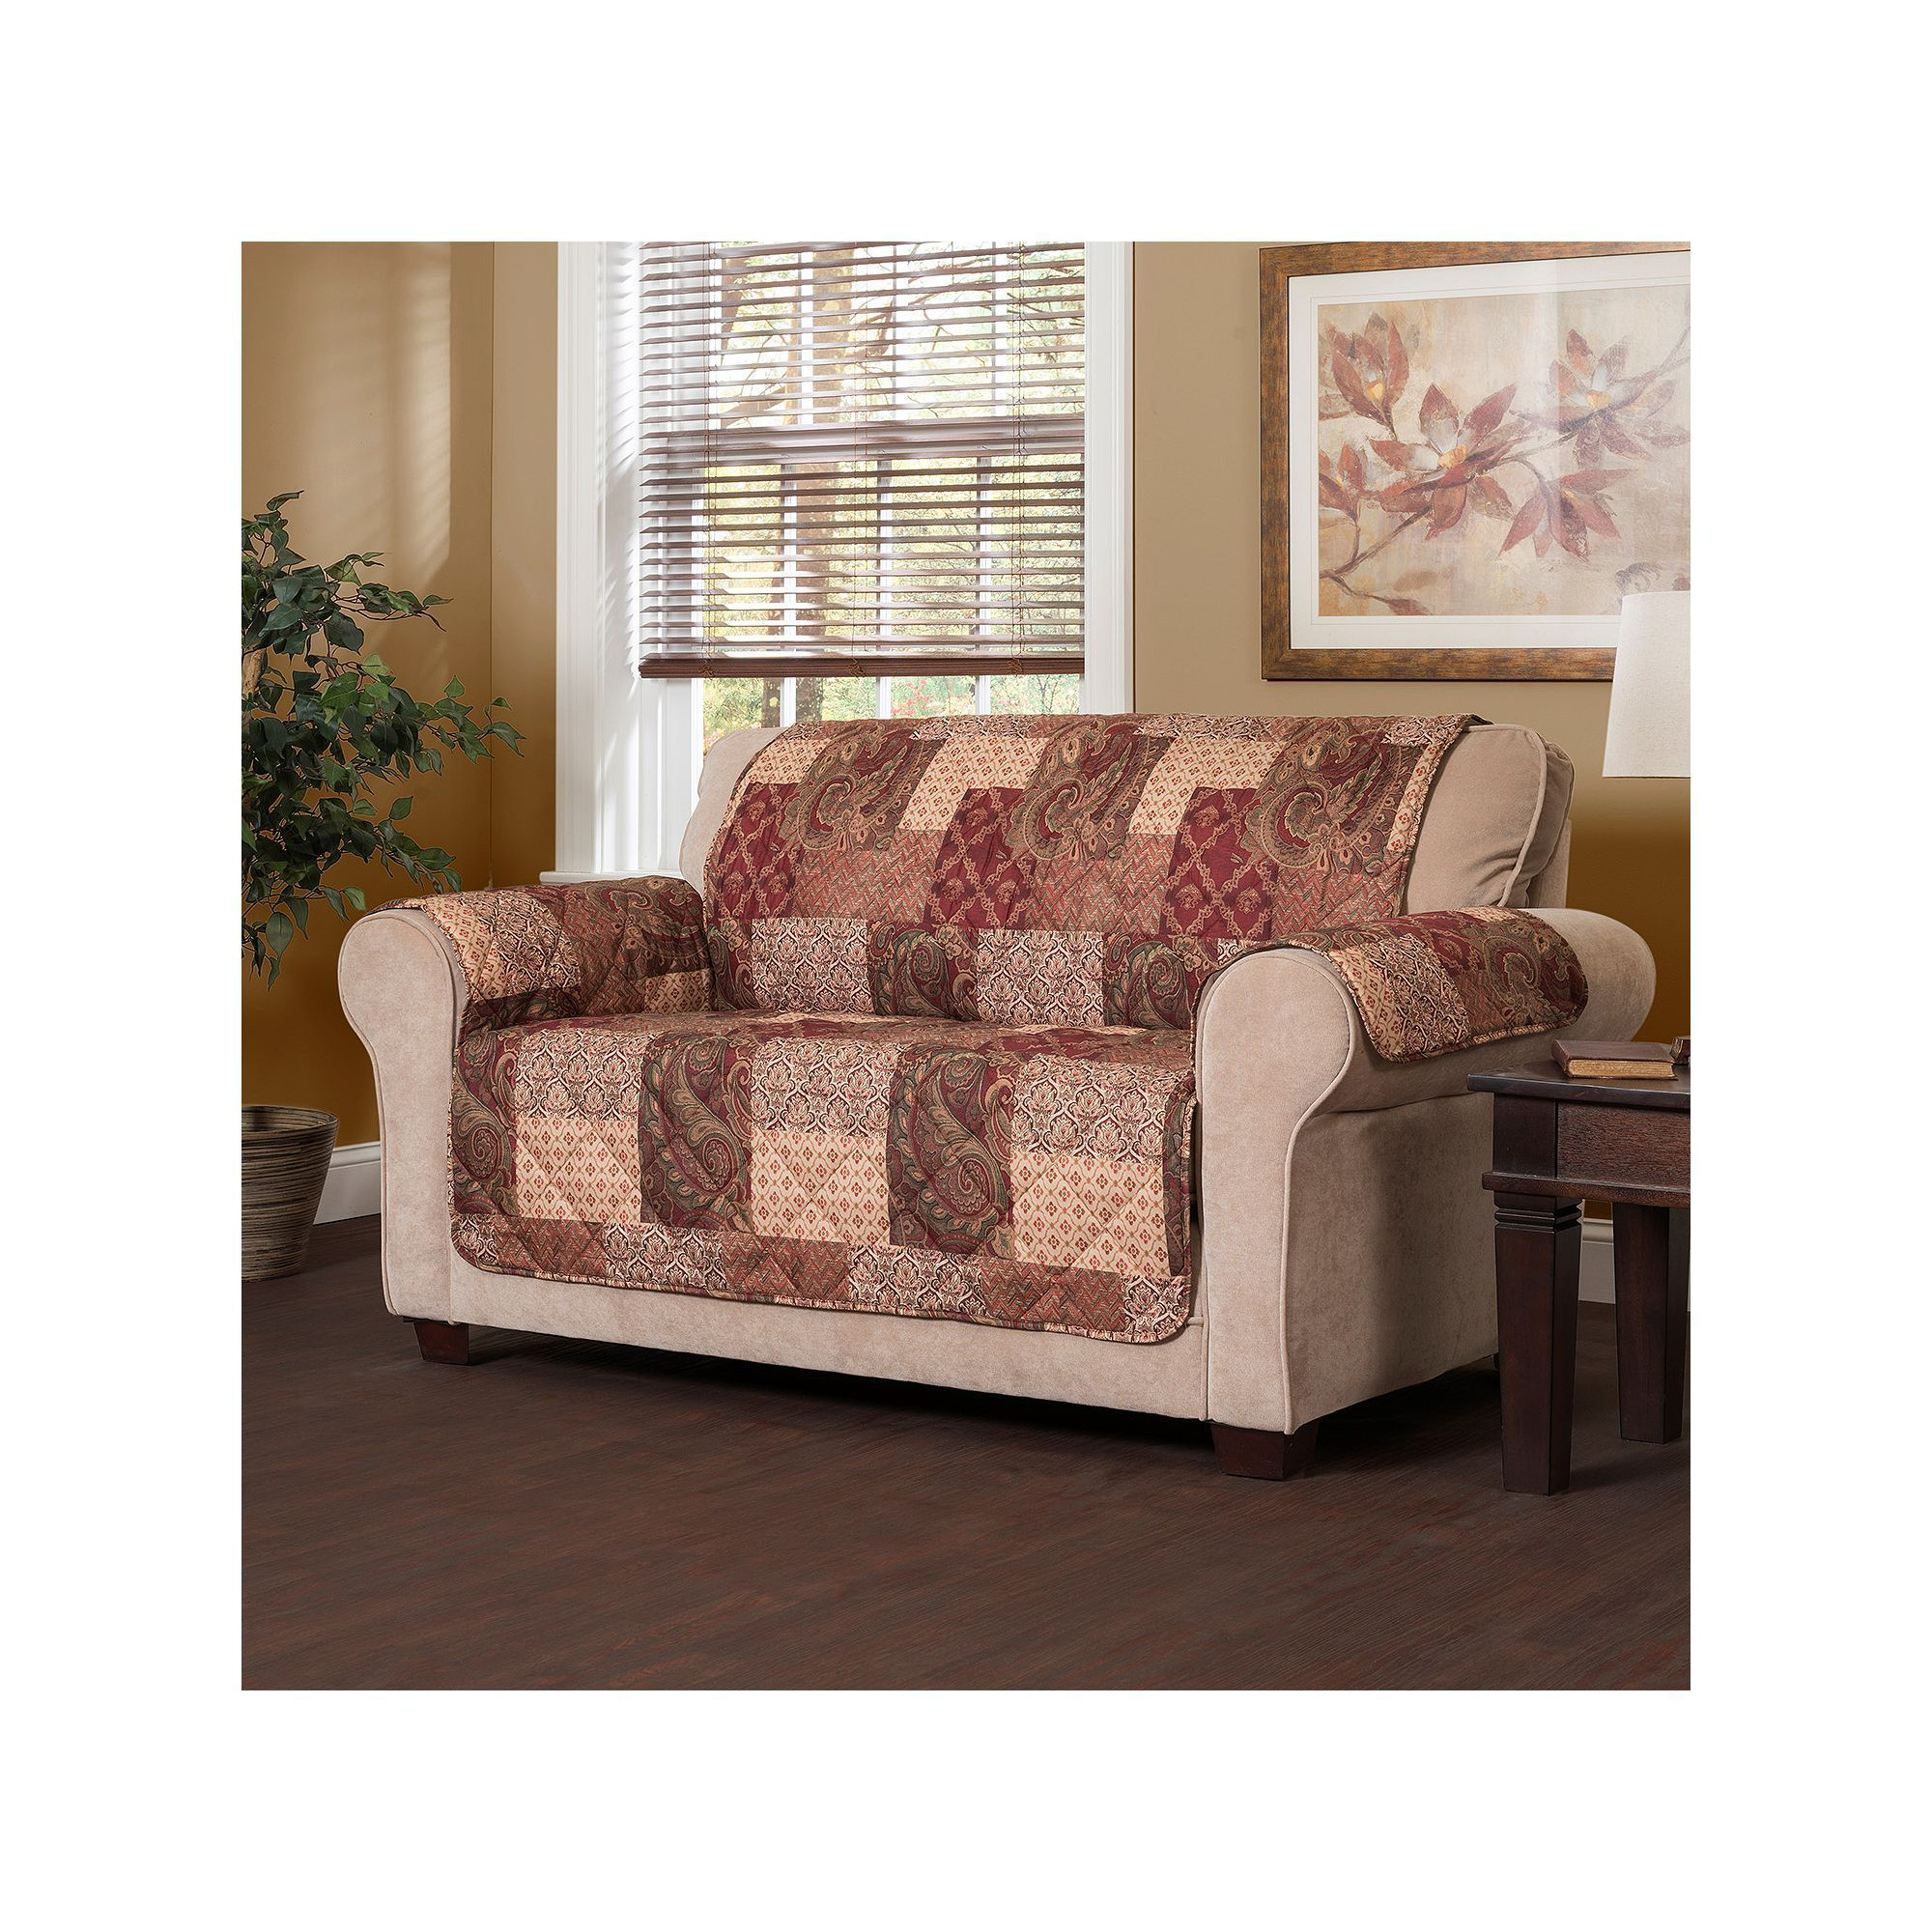 modern small hd slipcovers ideas for spaces on loveseat with resolution